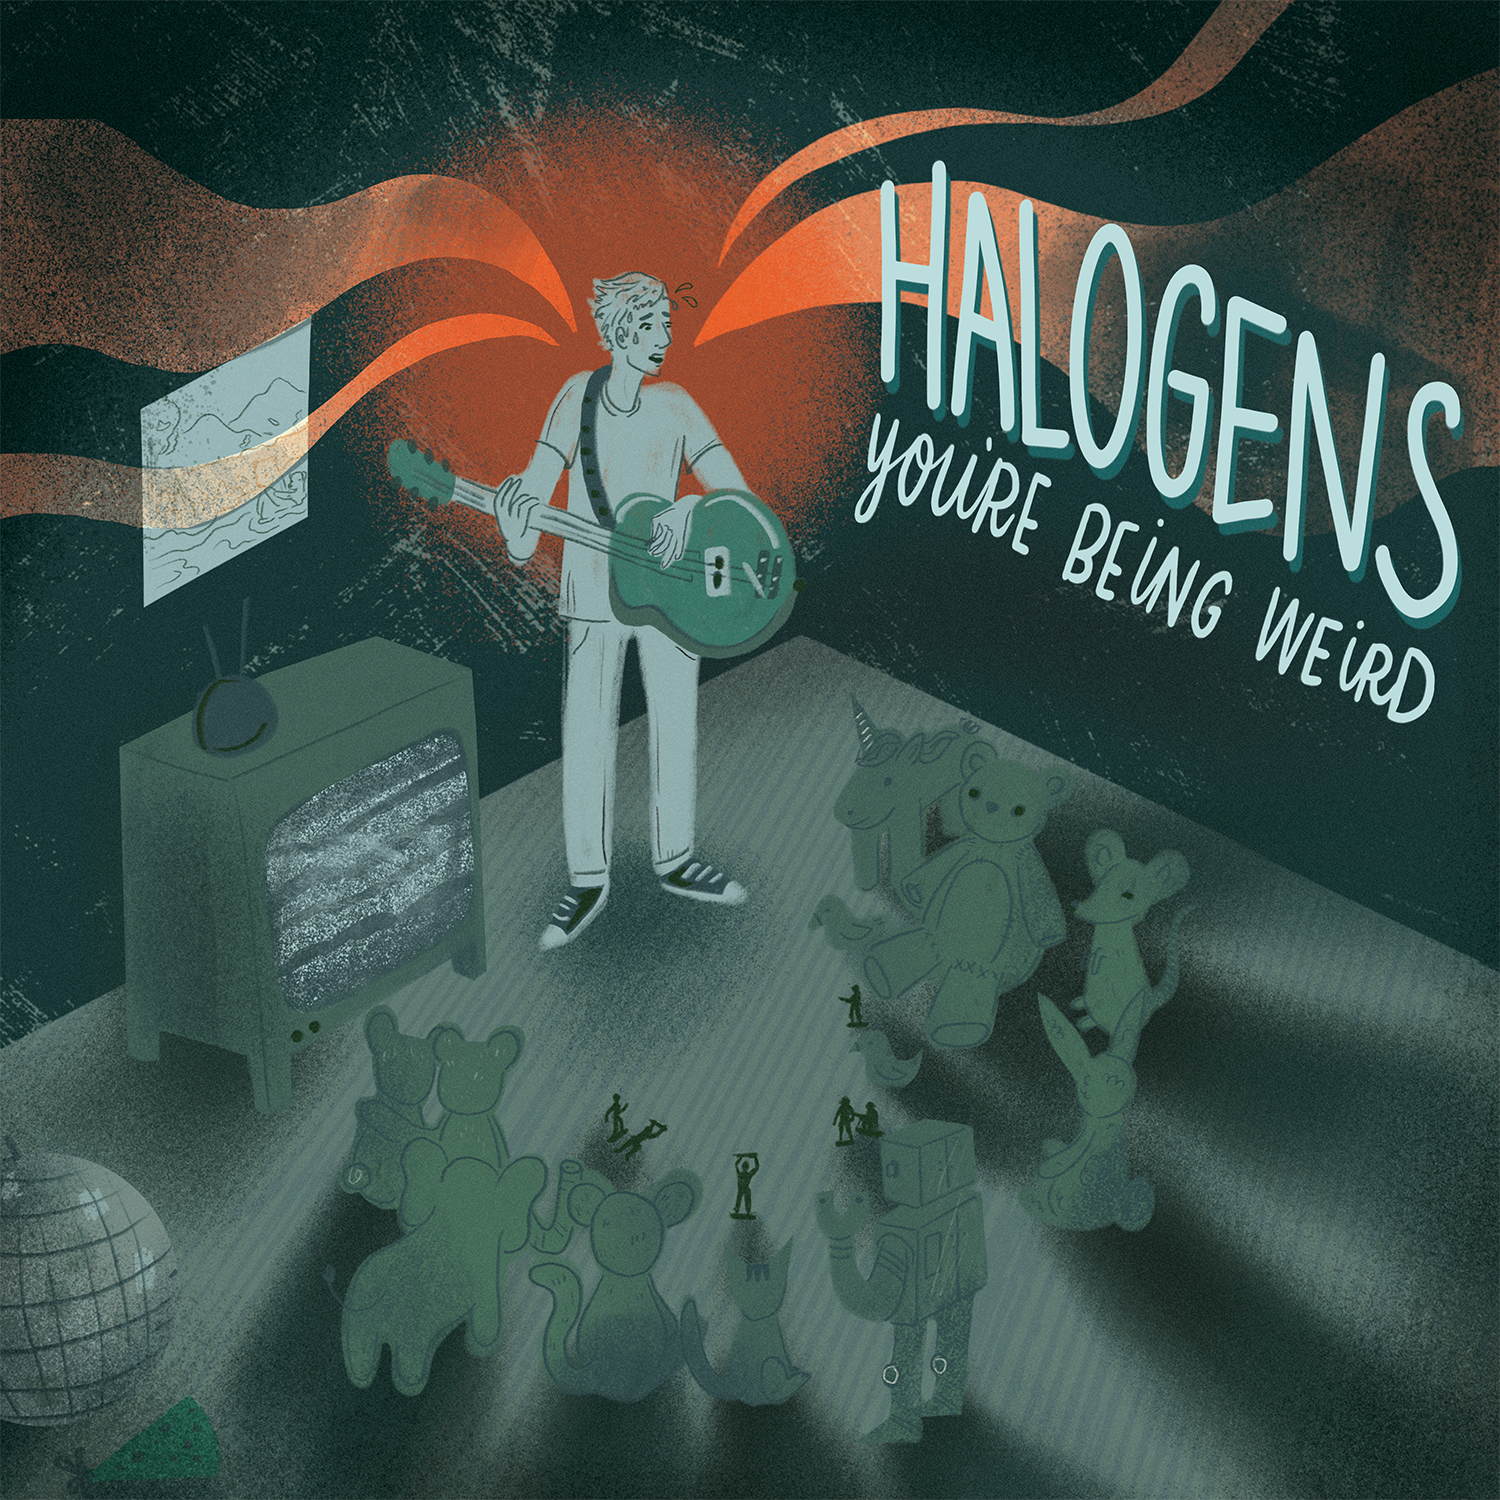 Halogens - You're Being Weird